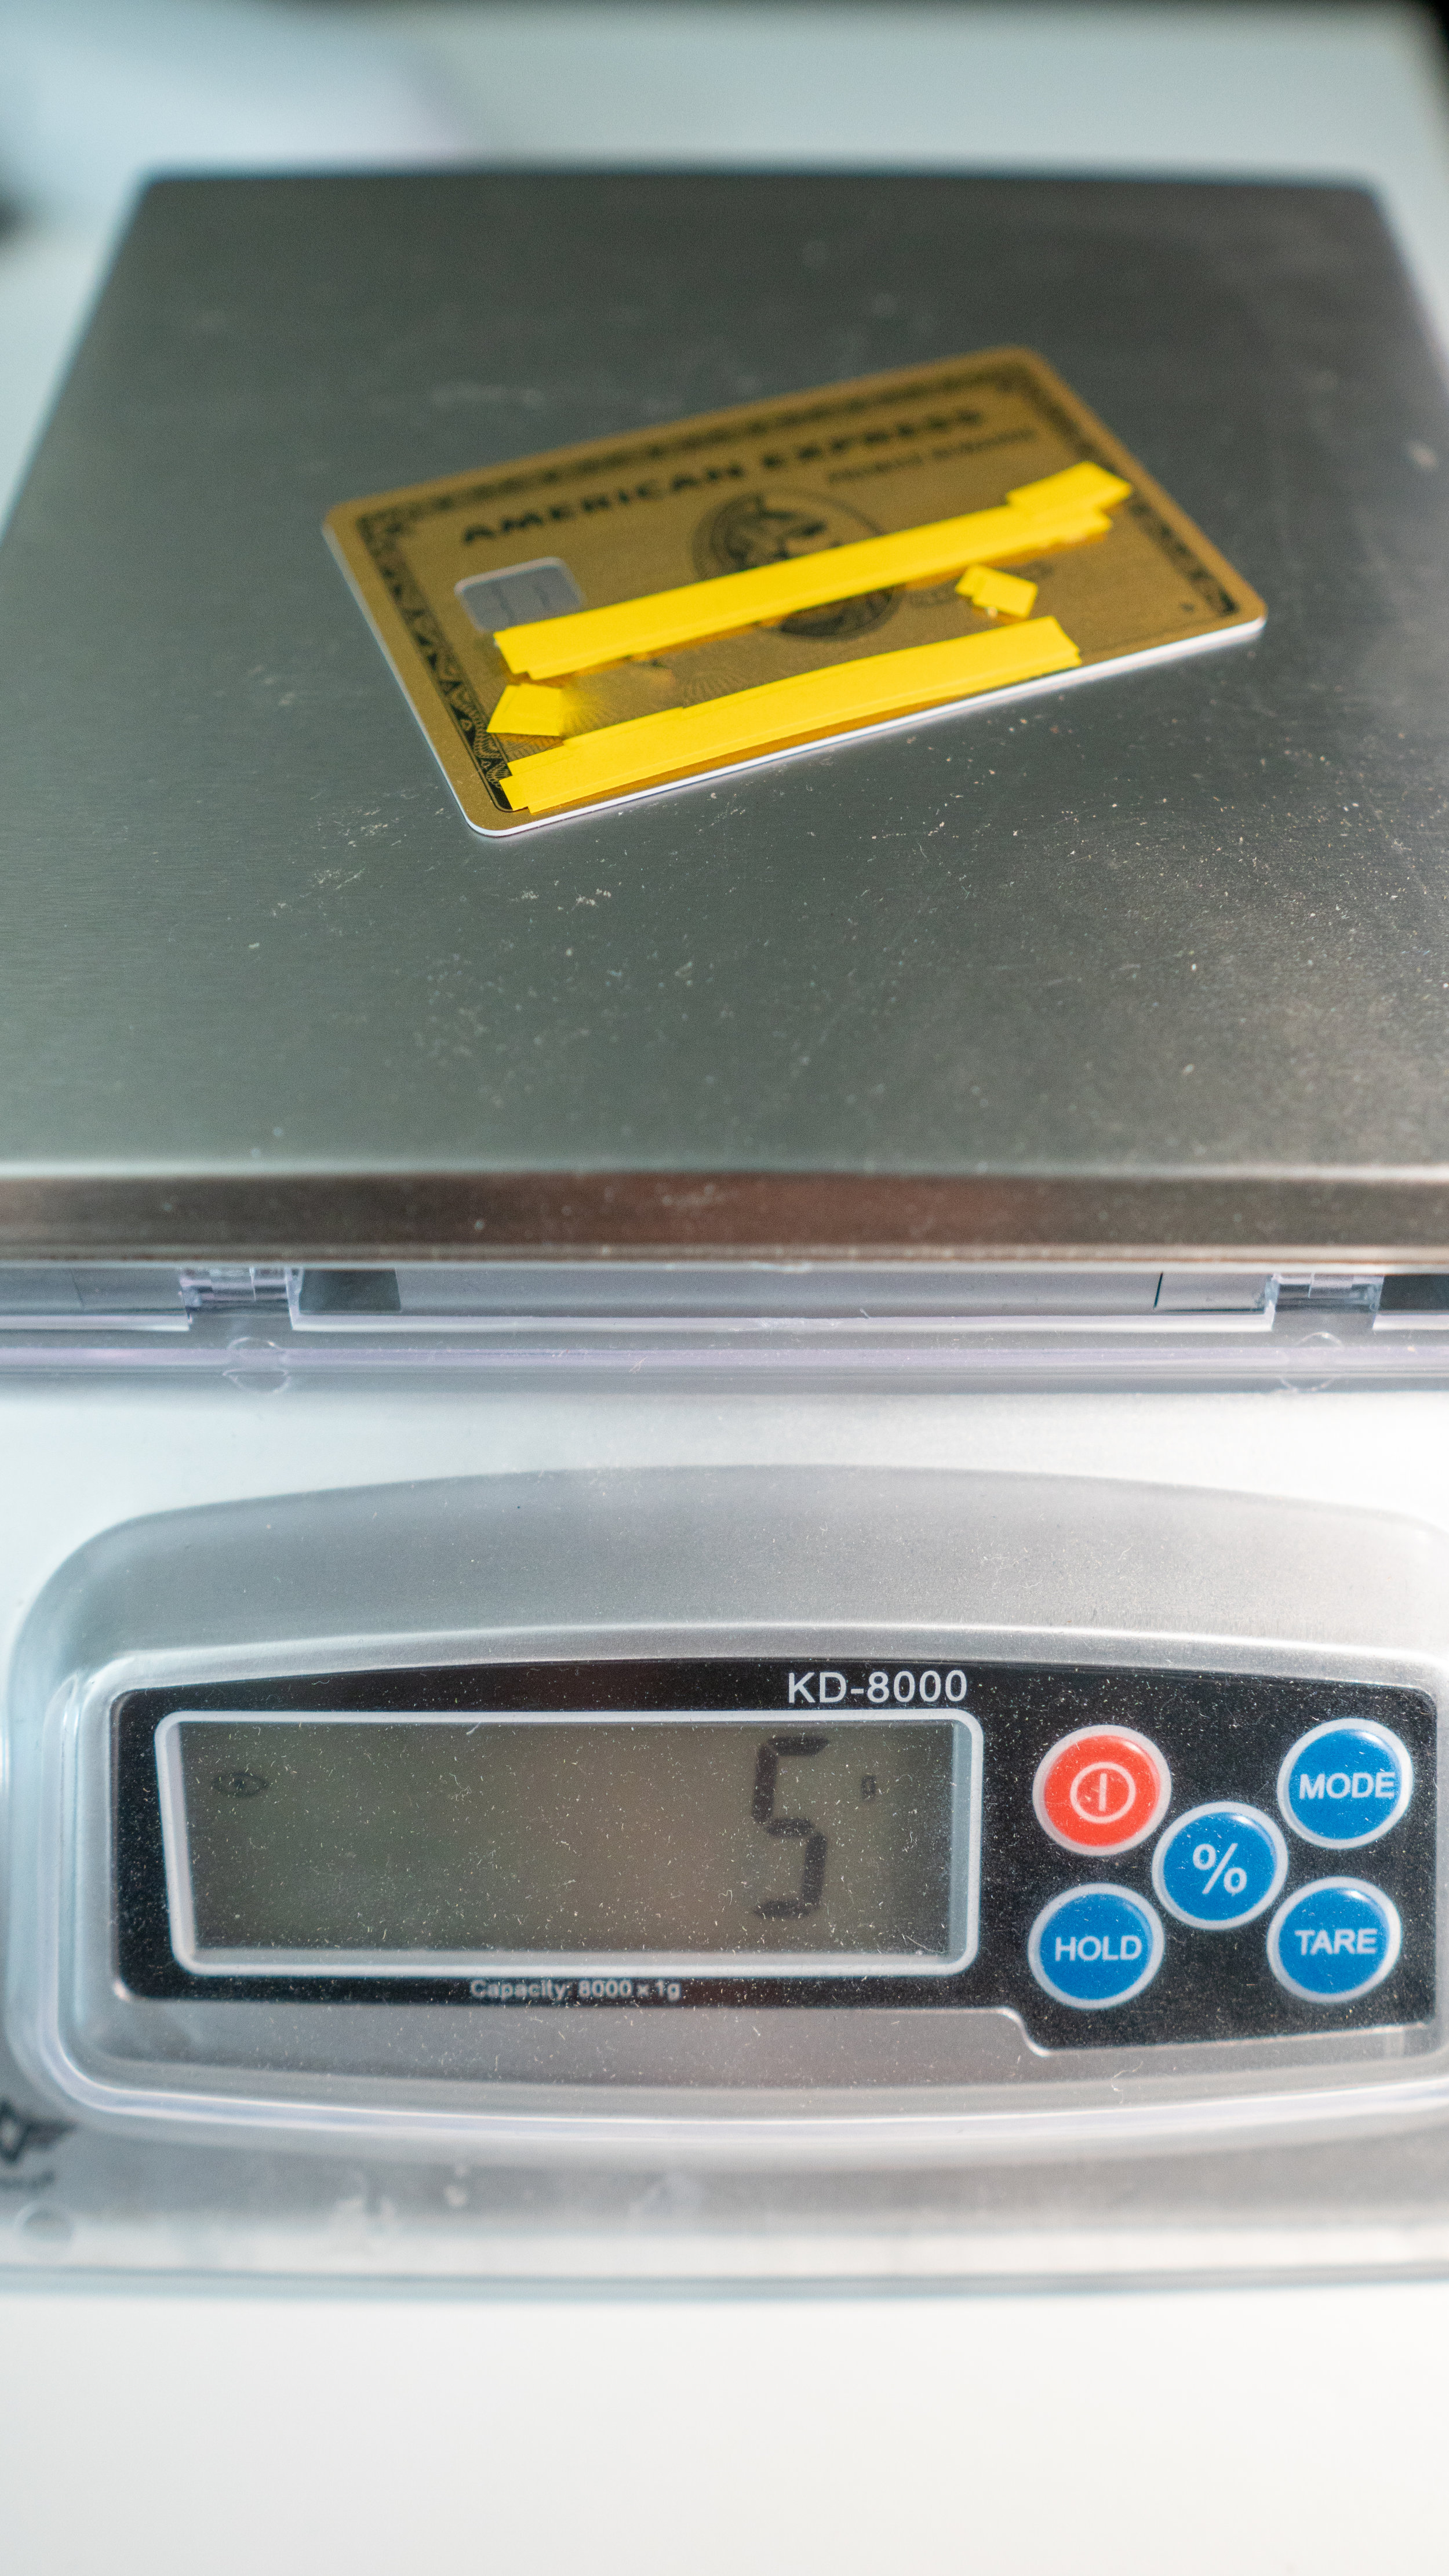 amex prg weight